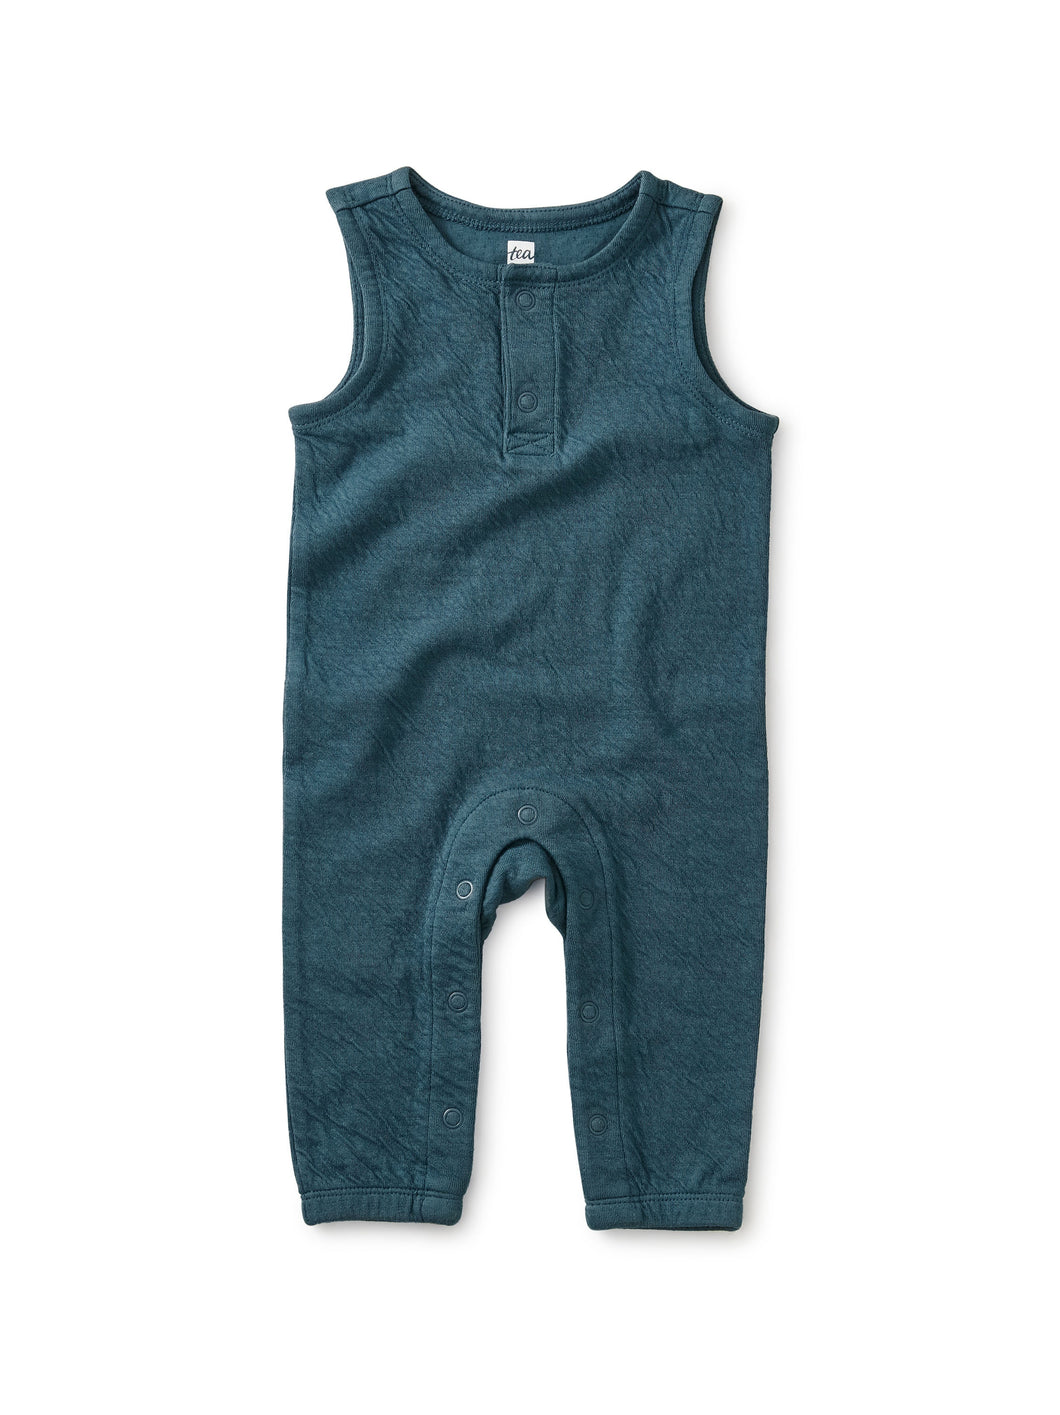 A Crinkle in Time Teal Romper